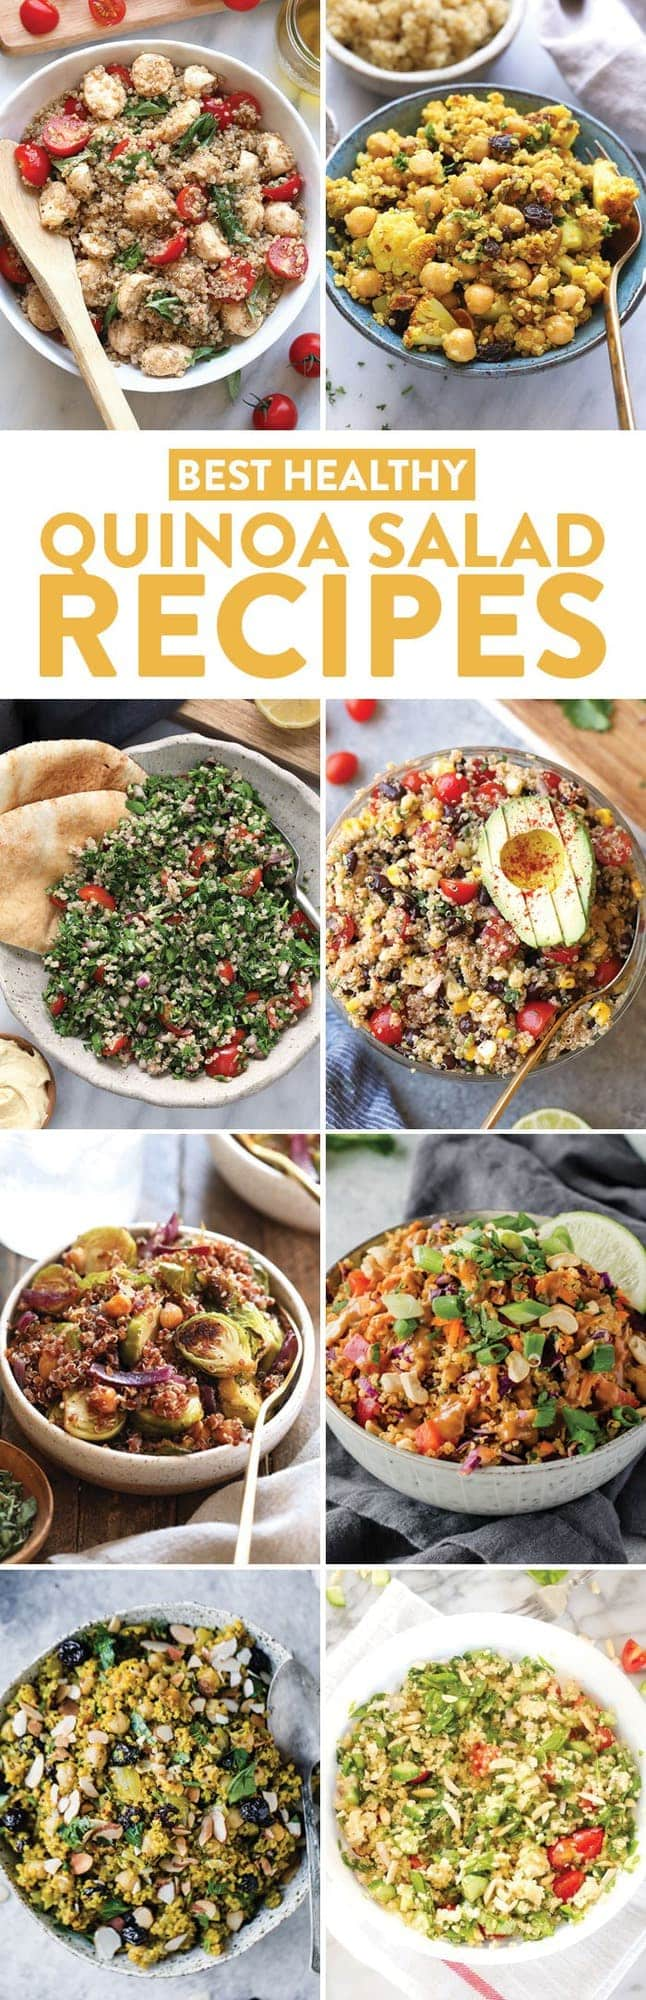 A photo collage of quinoa salad recipes